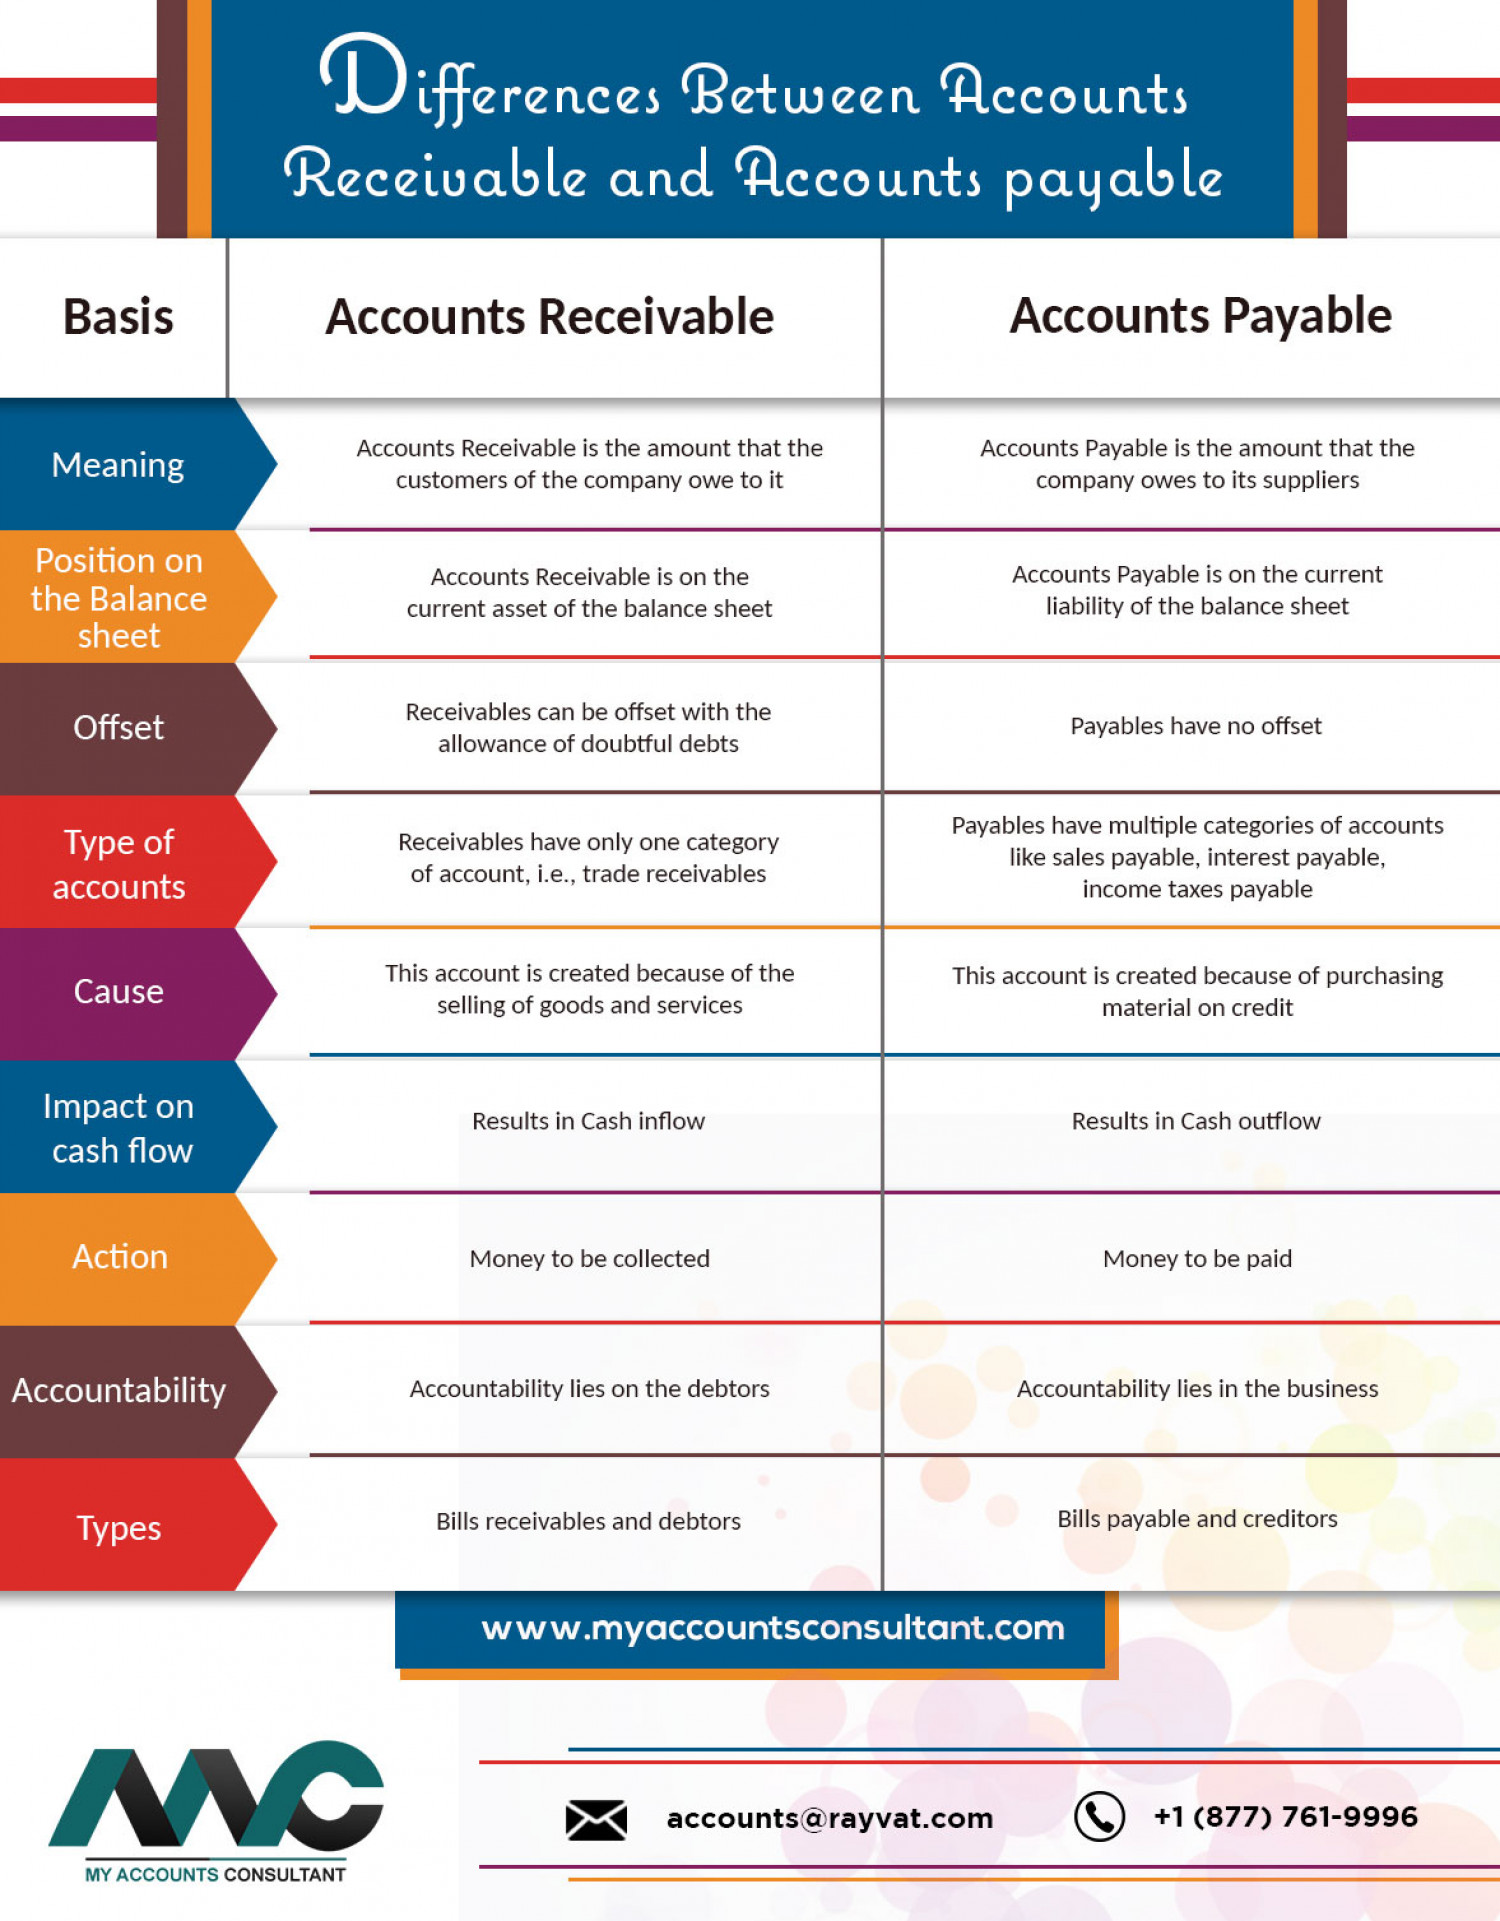 Differences Between Accounts Receivable and Accounts payable Infographic